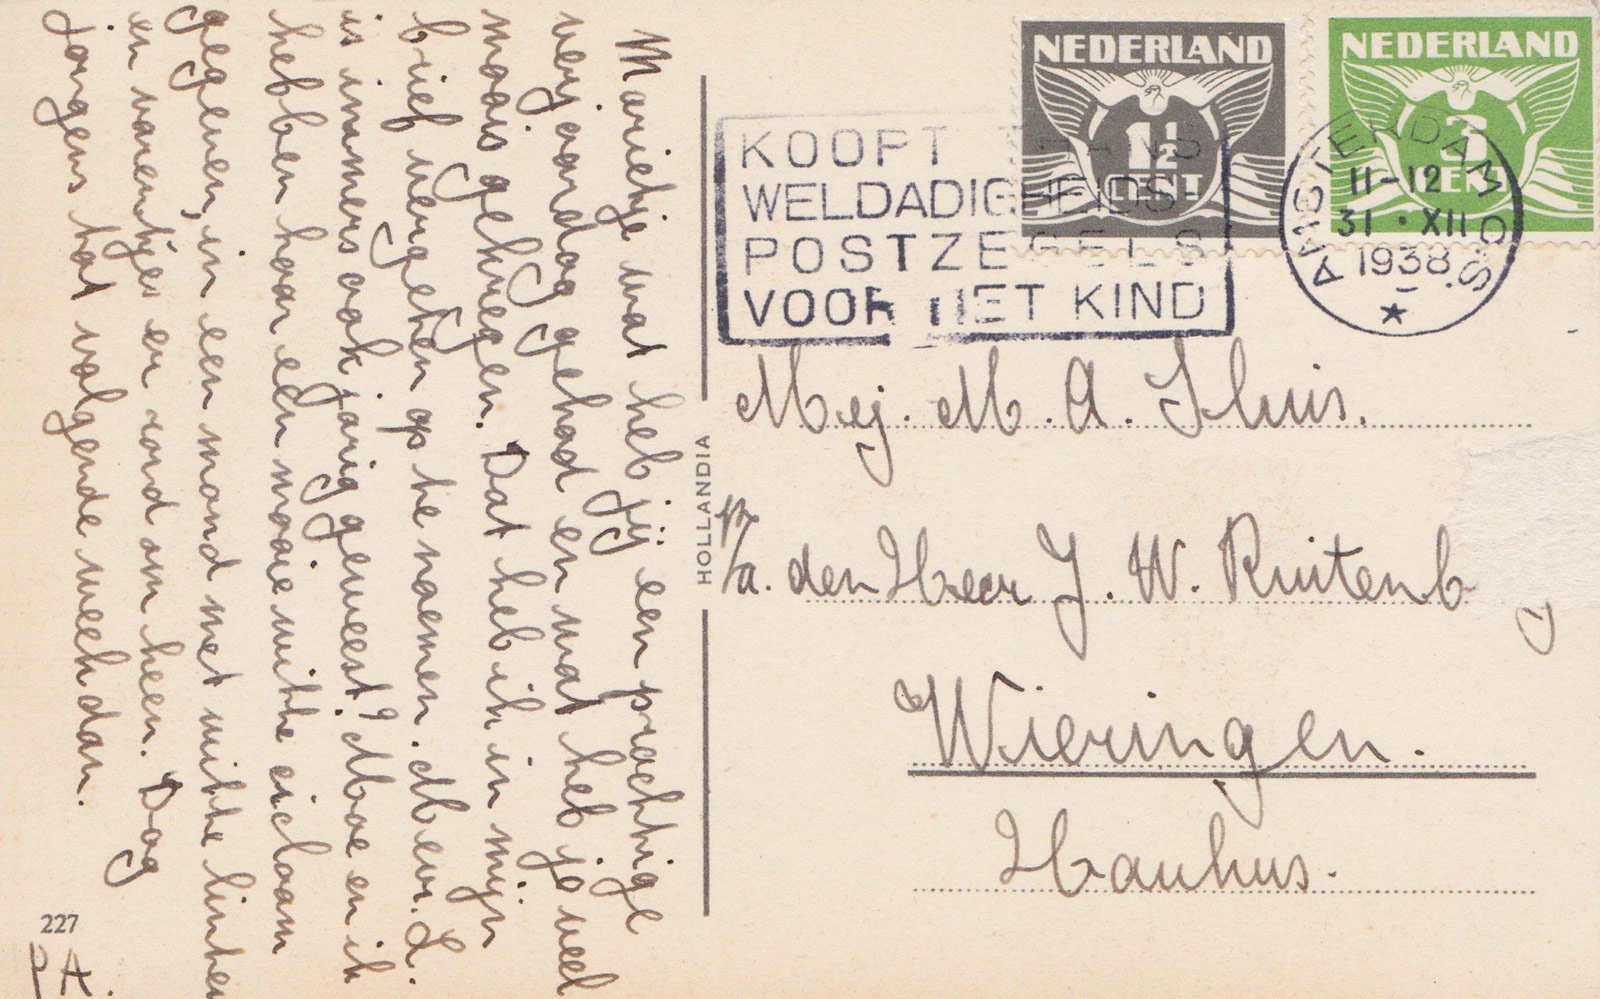 Handwriting and stamps